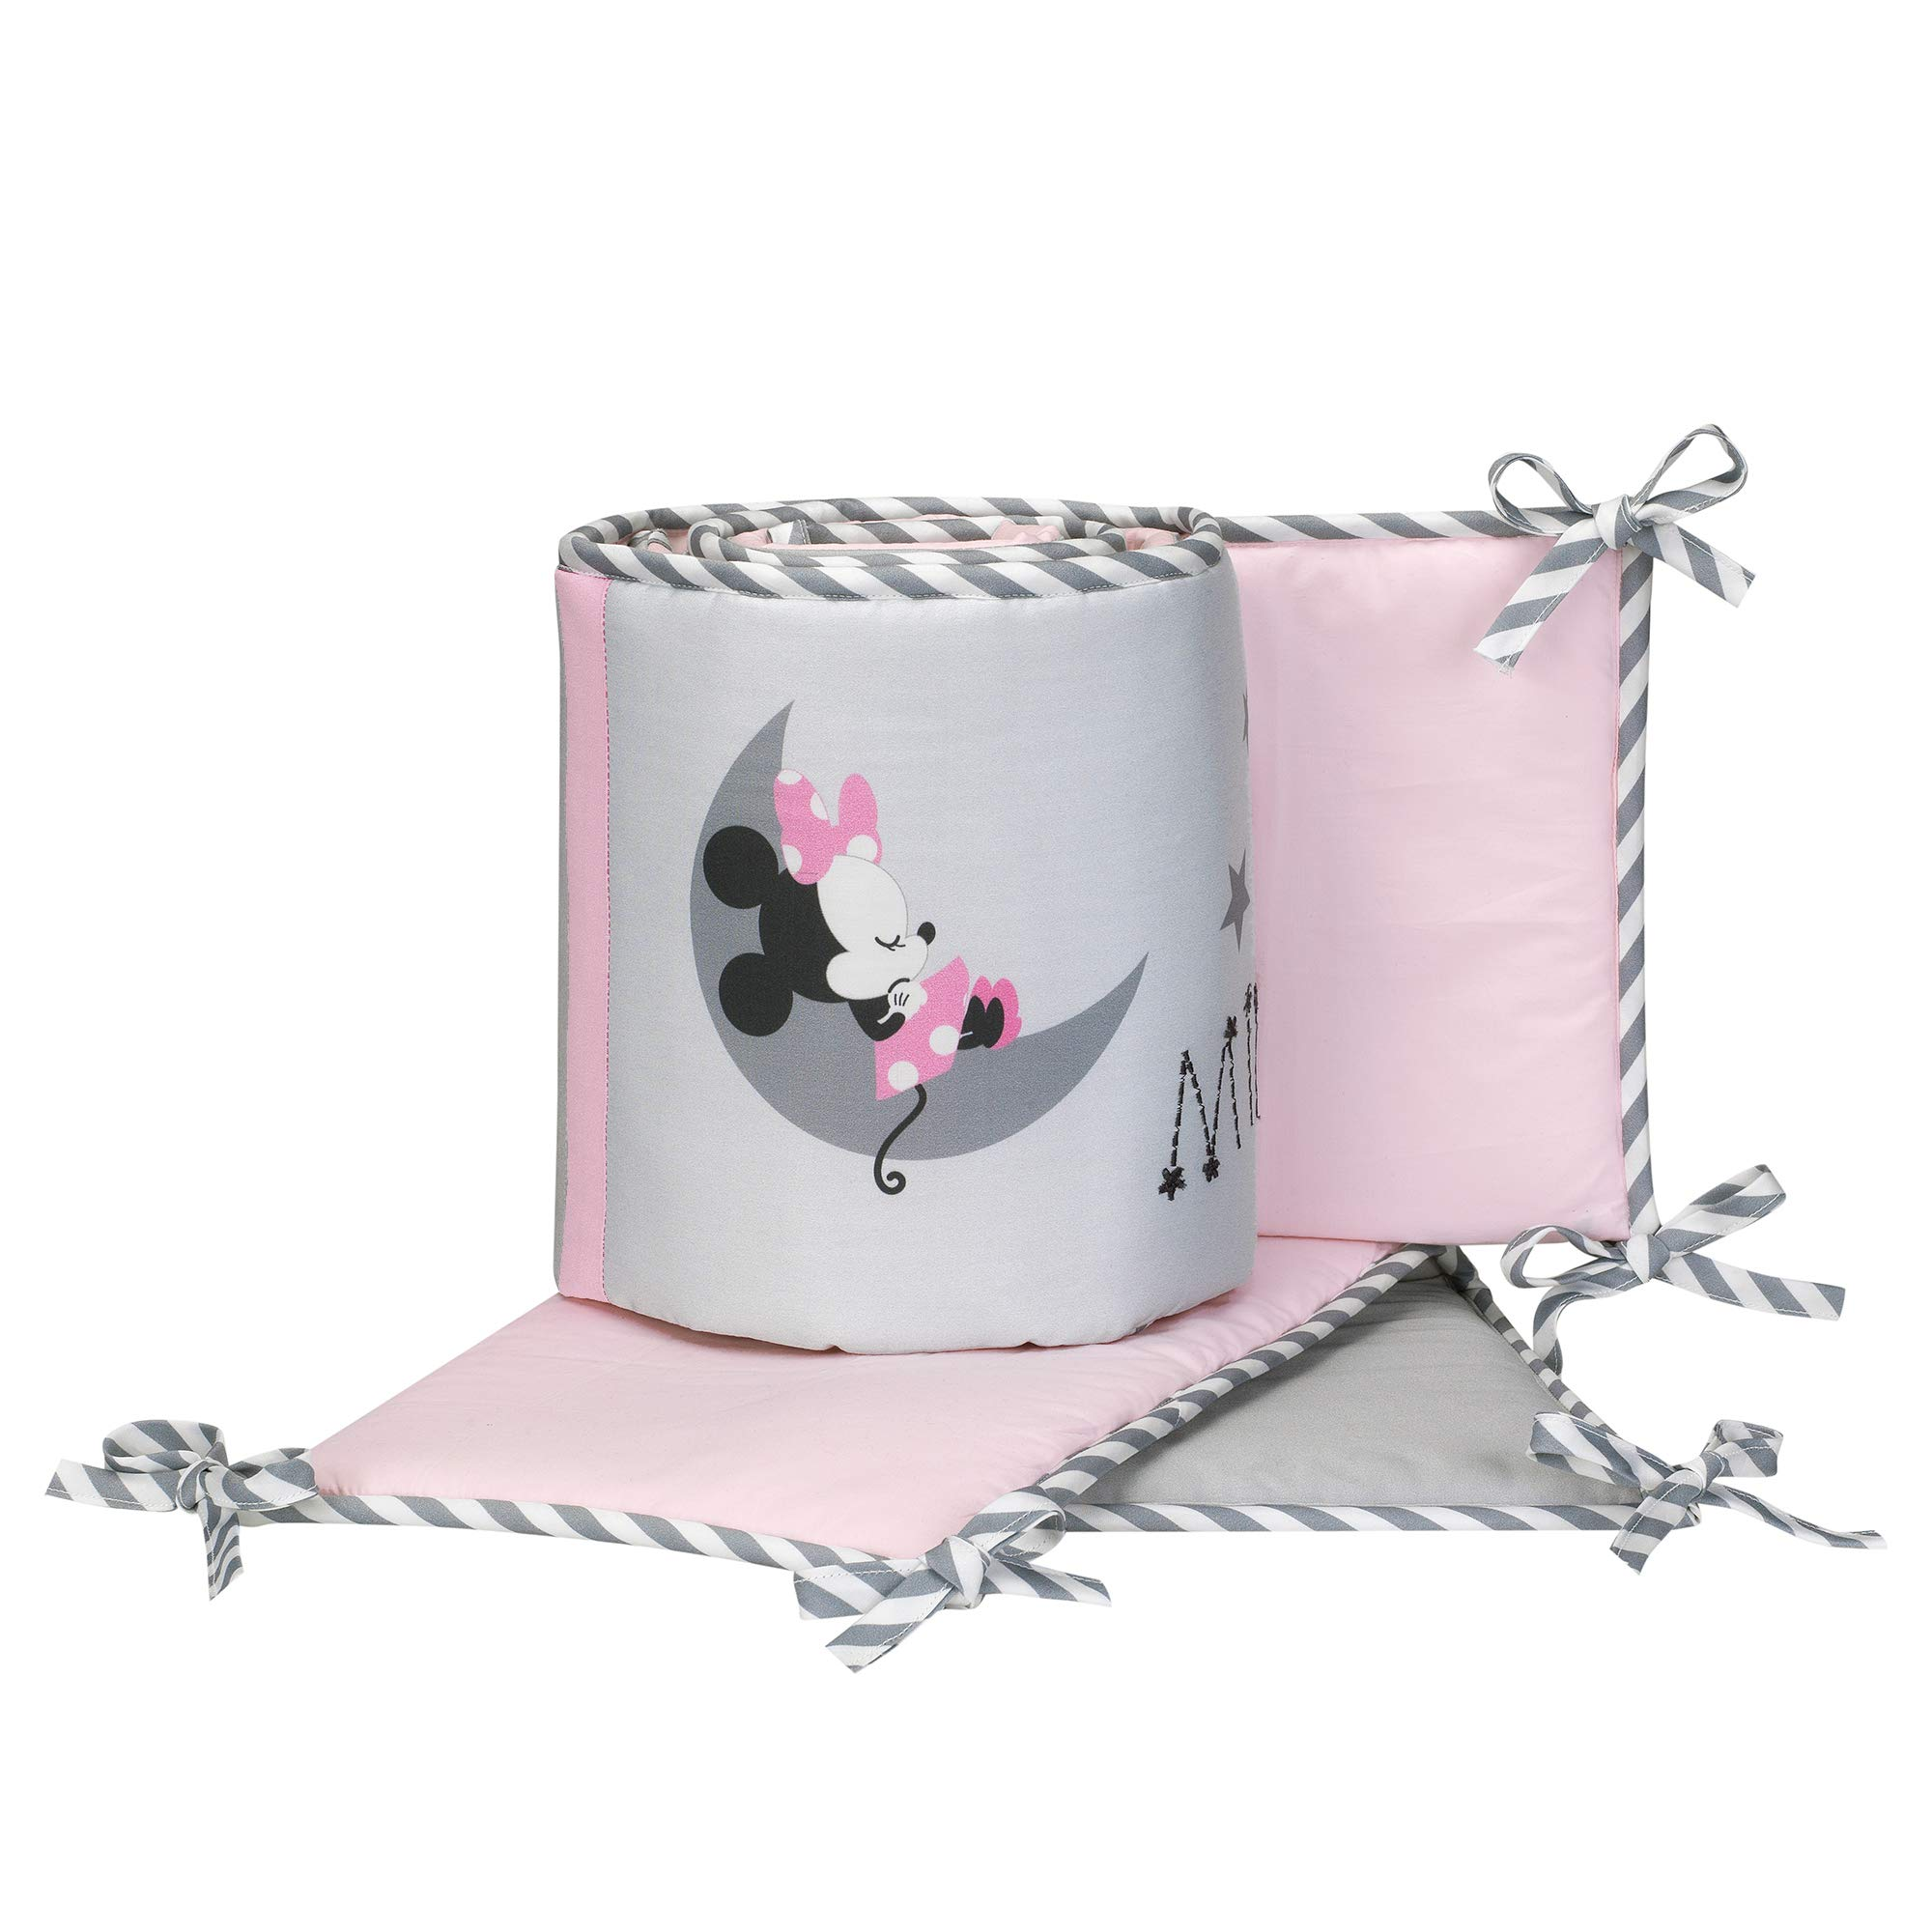 Lambs & Ivy Disney Baby Minnie Mouse 4 Piece Crib Bumper, Pink/Gray by Lambs & Ivy